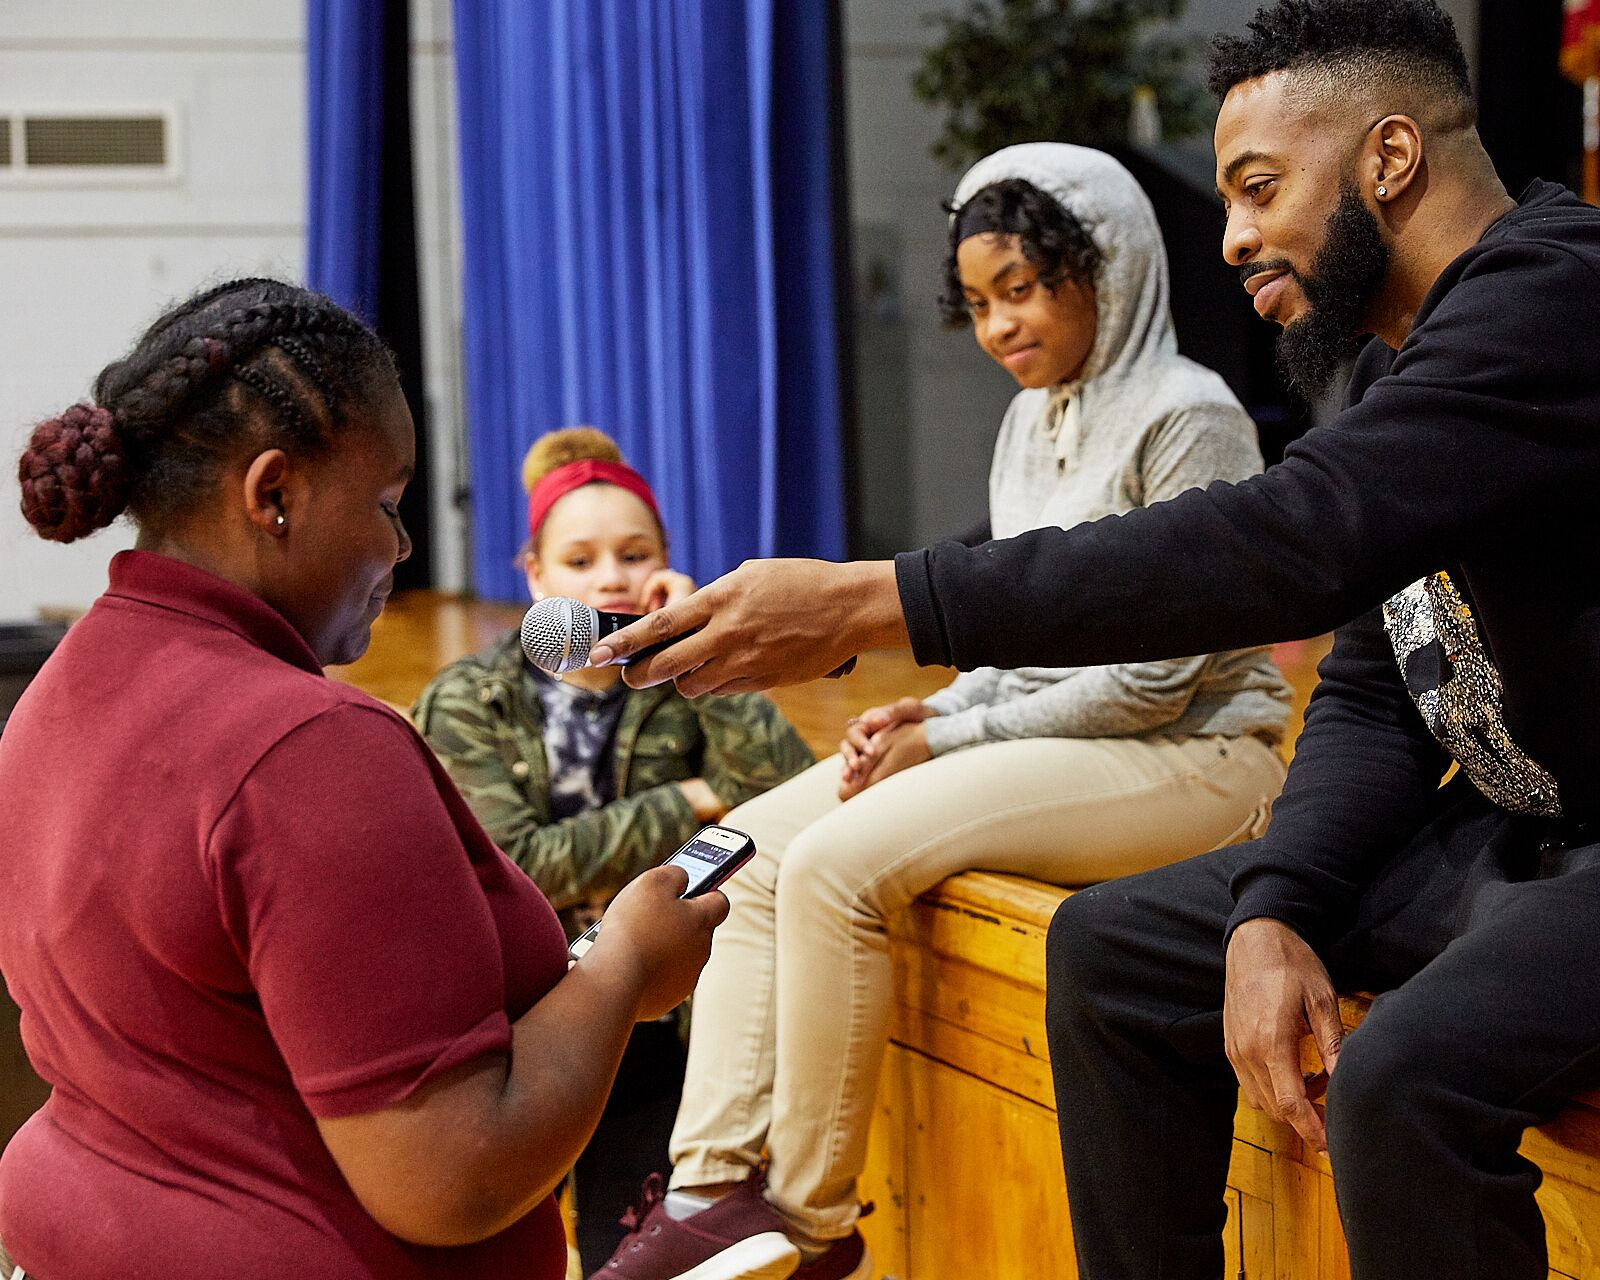 """For more information on Chester Education Foundation's programming please call 610-364-1212, or email  cef@chestereducation.org   To connect with Amillion, follow him on Instagram, Facebook, and SoundCloud: @AmillionThePoet  To learn more about """"Let's Get Ready"""" visit their website:  https://letsgetready.org/"""